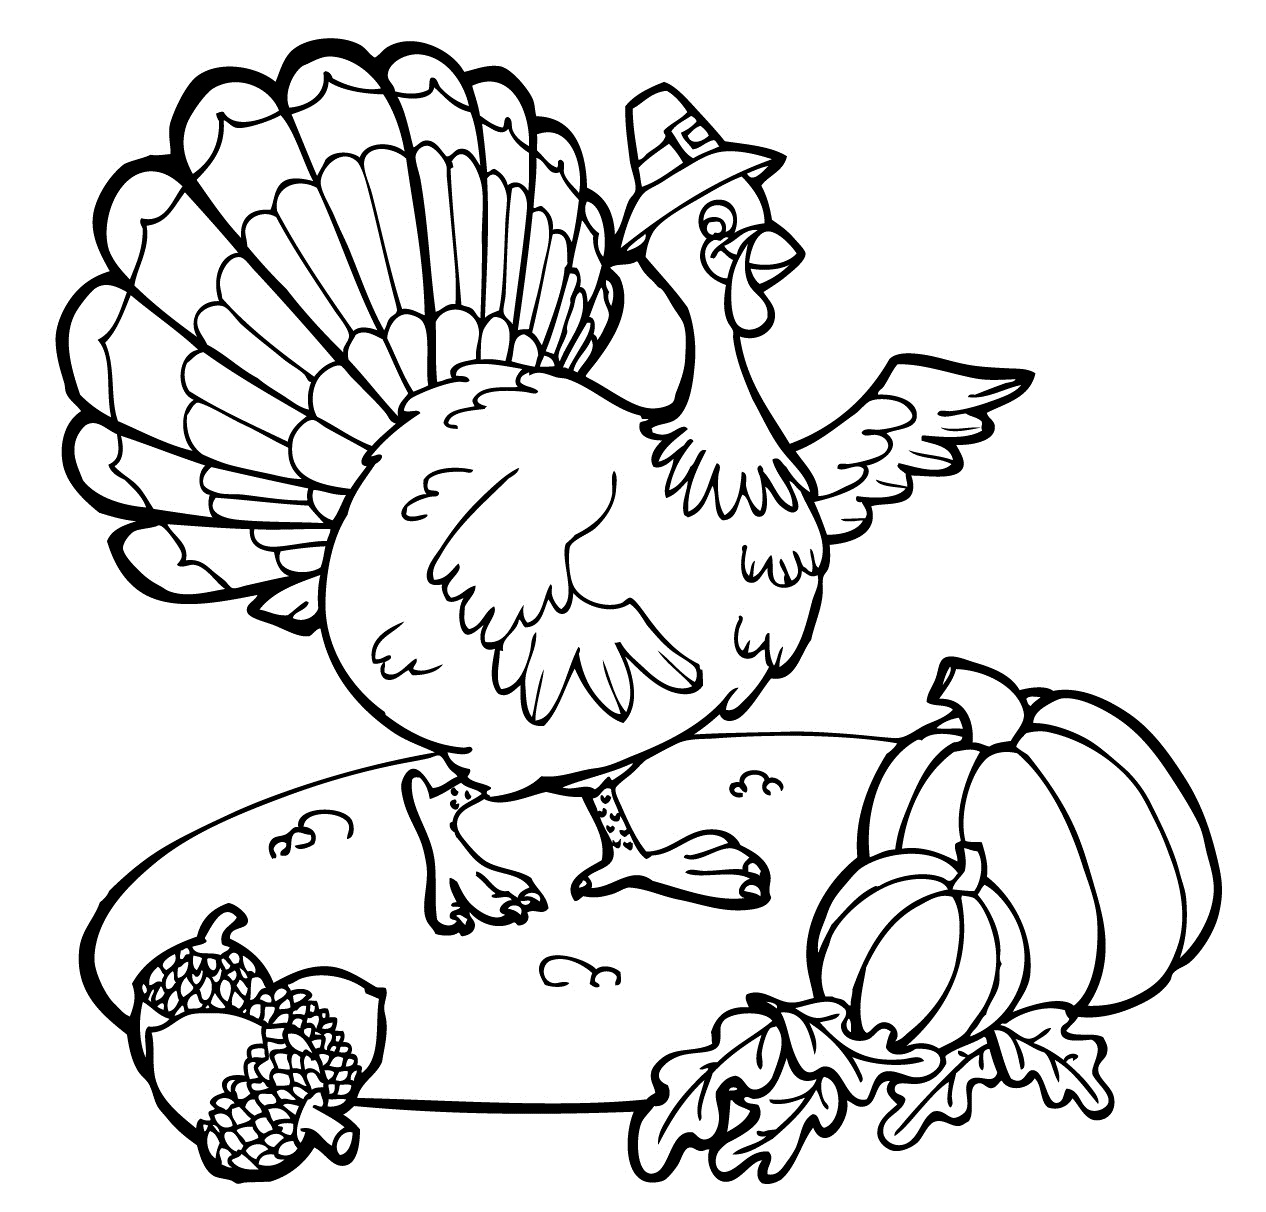 1266x1212 Awesome Free Printable Turkey Coloring Pages For The Kids